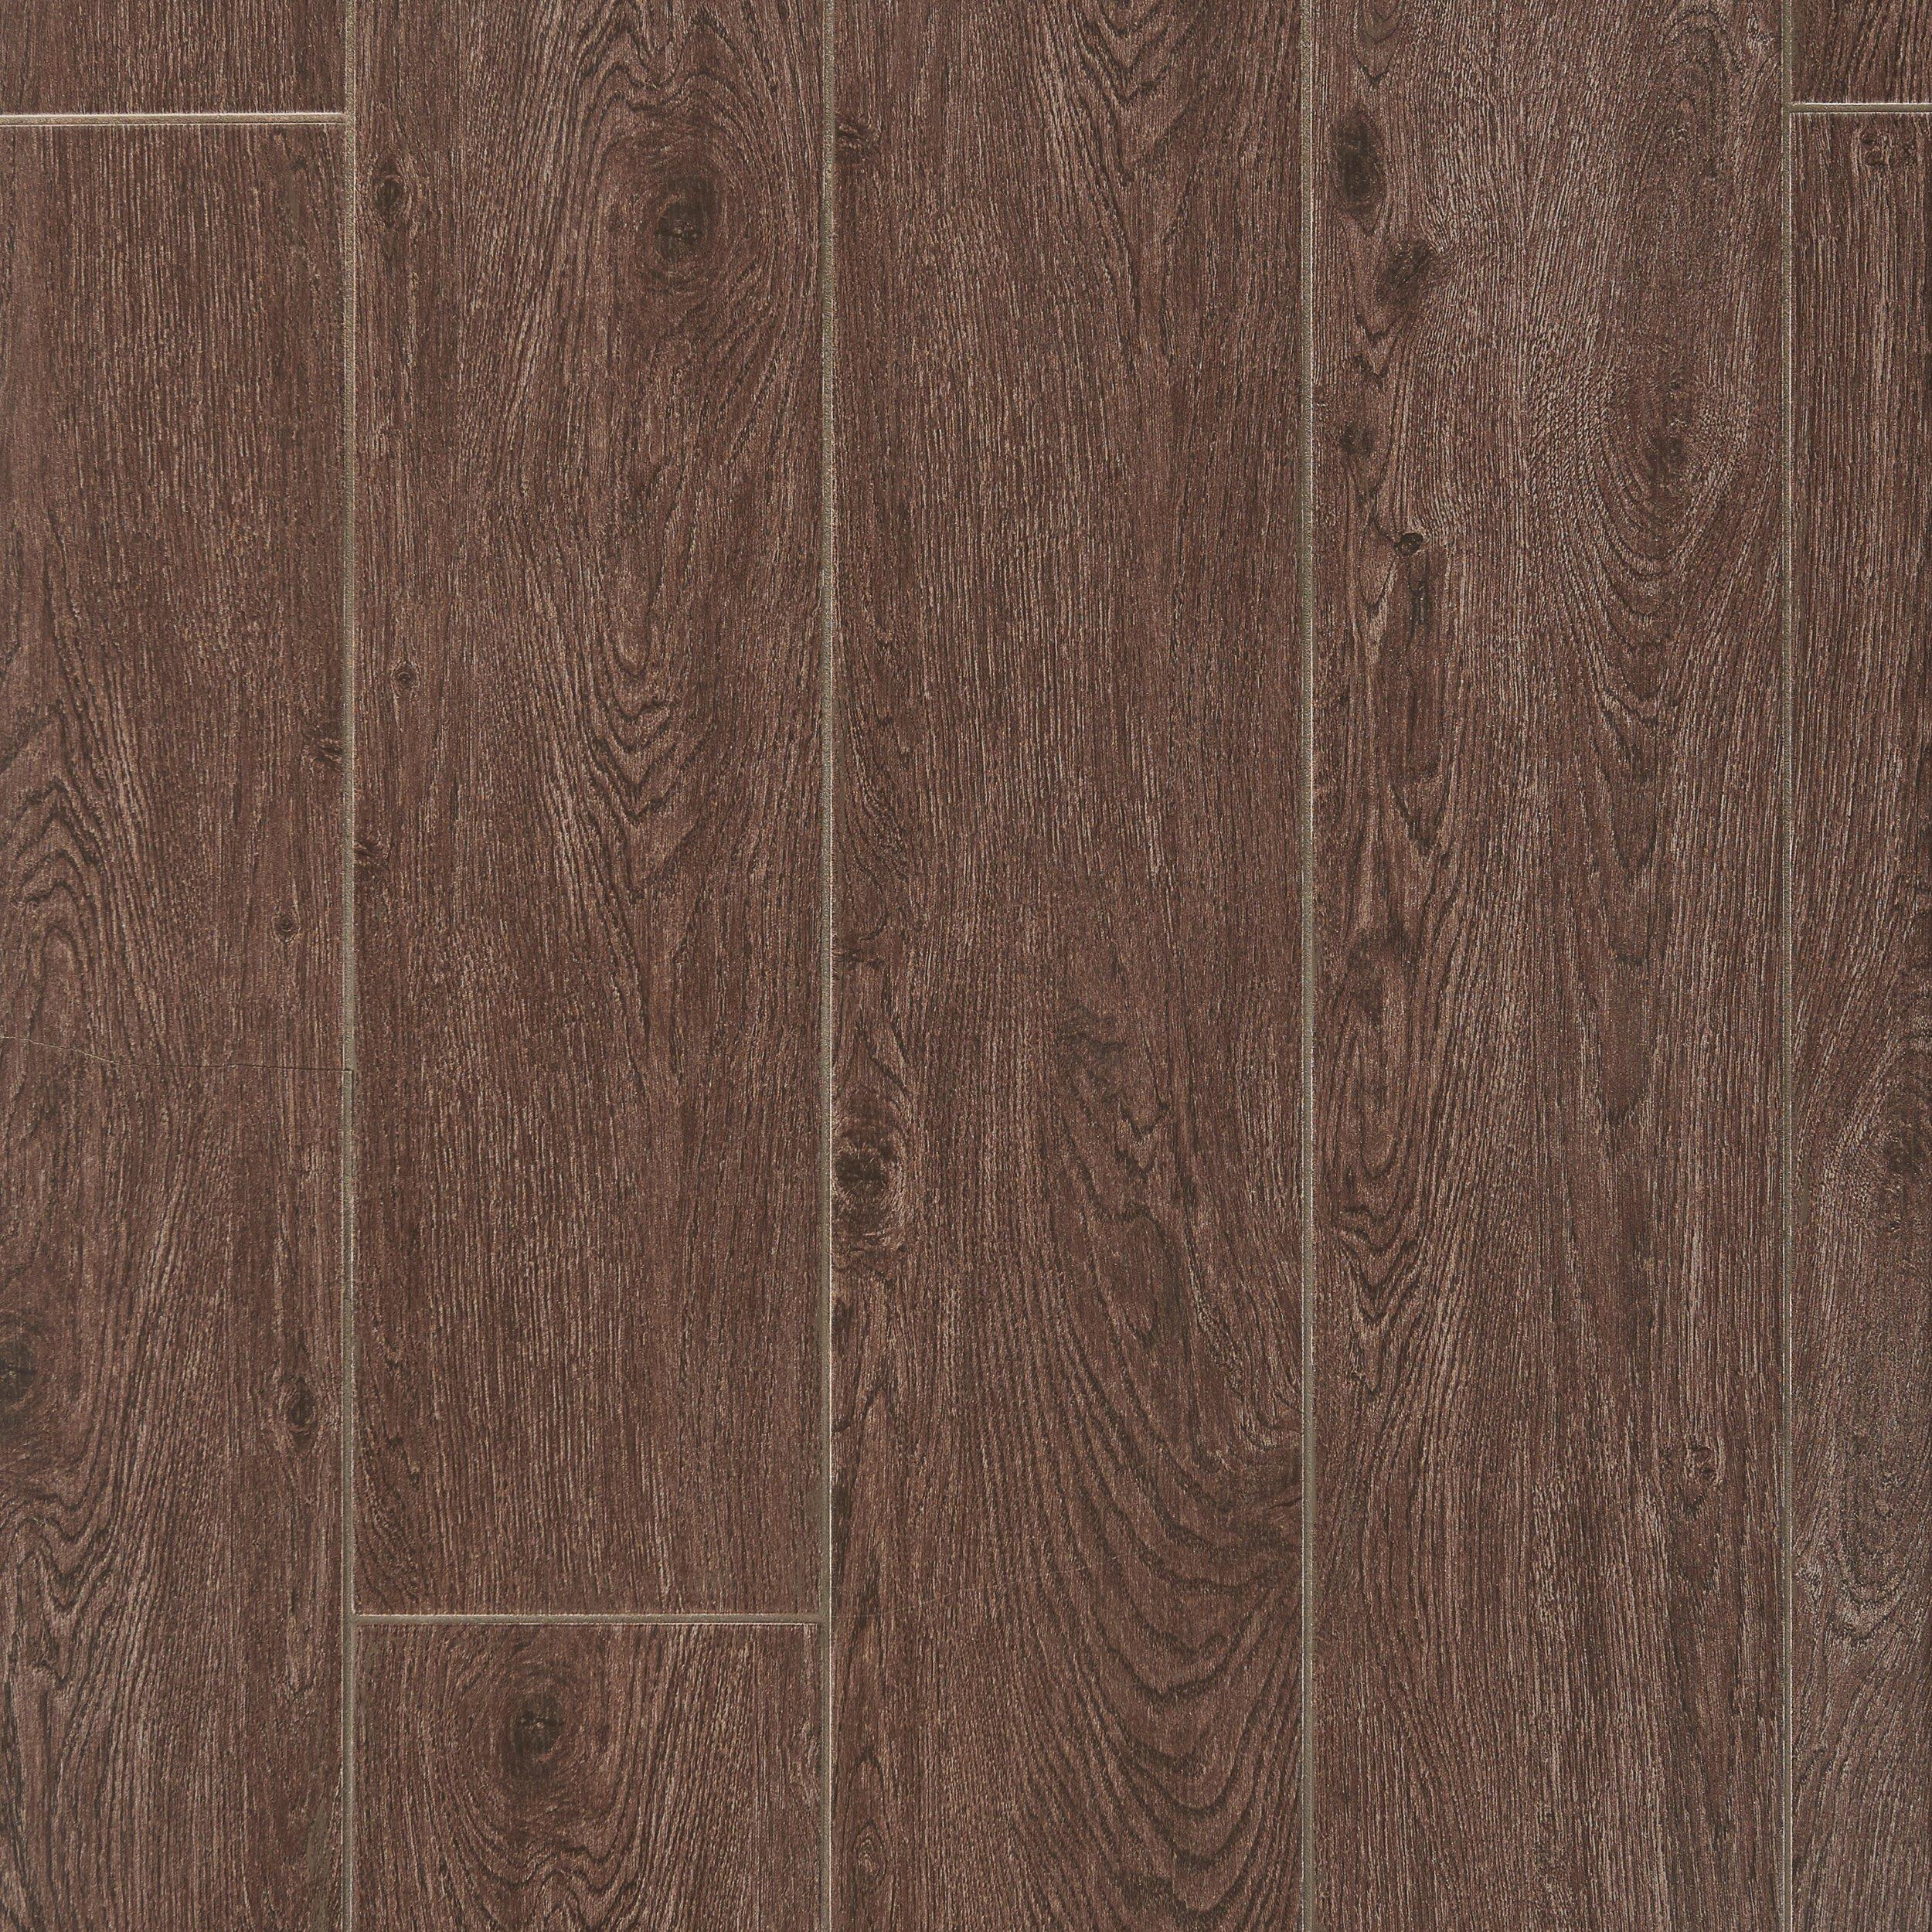 Maduro Dark Wood Plank Ceramic Tile   8 X 40   100132778 | Floor And Decor